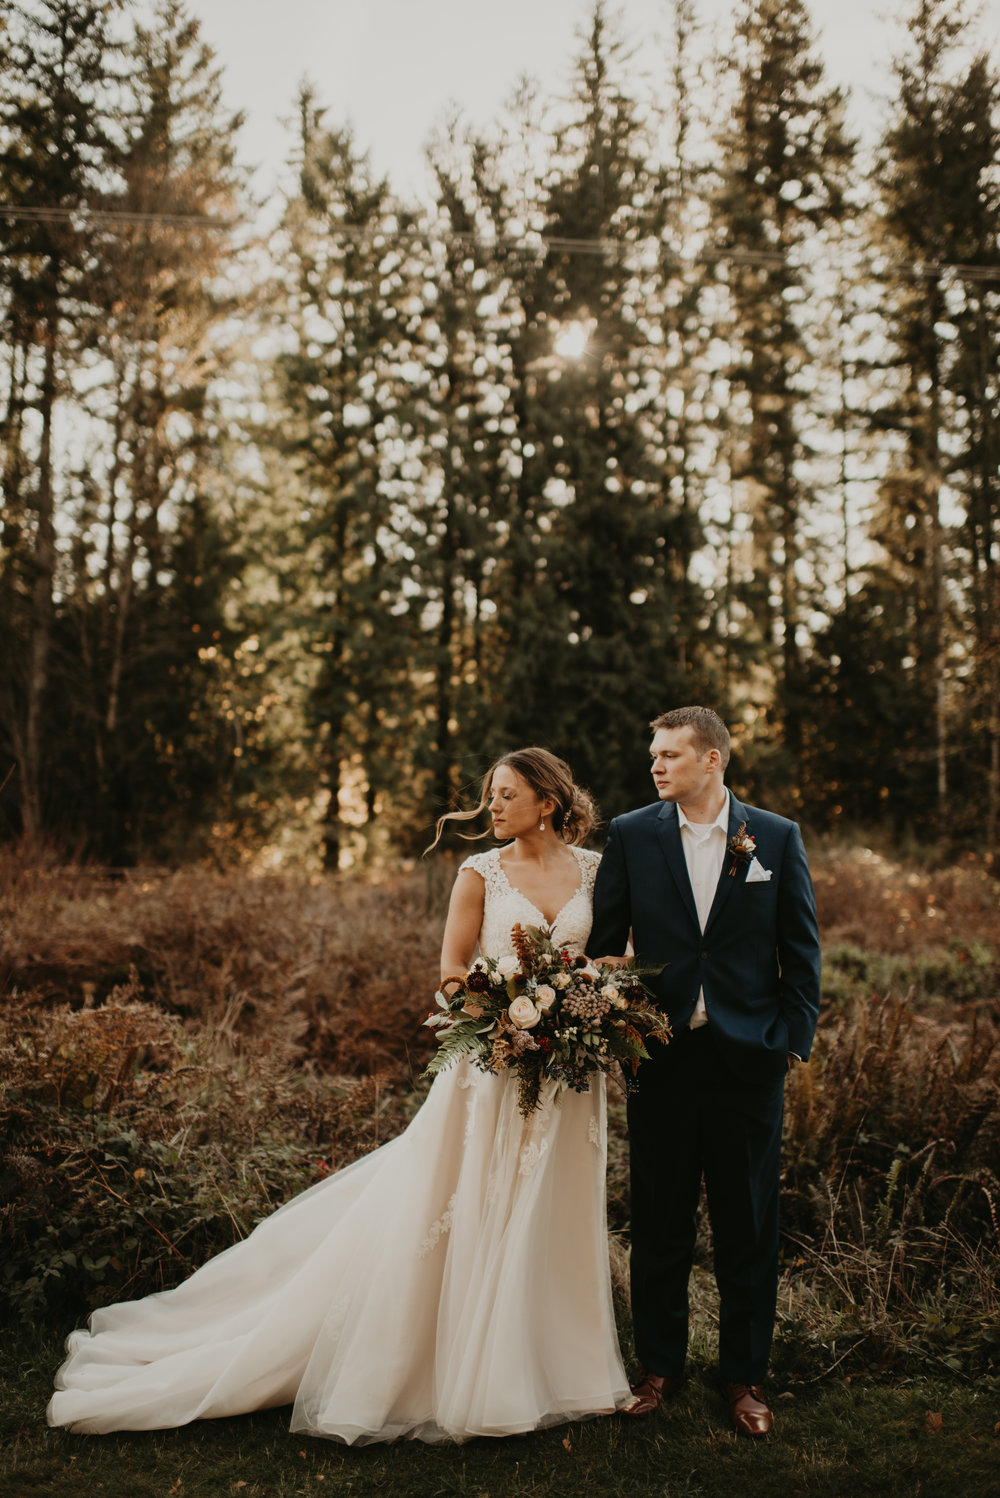 """""""KAMRA WAS NOTHING SHORT OF AMAZING""""  My husband and I had a small, intimate wedding/elopement (with 15 of our closest family members) in Monroe, Washington November 2018. We are originally from and live in Anchorage, Alaska but selected Washington as we have family close by, and knew it would be slightly warmer that time of year. I found Kamra through Google search and was immediately captivated by how breathtaking her photos were. Picking out a photographer in another state isn't always easy, but Kamra was a saint from the very beginning. She helped us tremendously, in not only picking a location to have the wedding (and a separate location to take portraits of us two) but giving us her vendor recommendations for everything else we needed for that day (flowers, cake, etc.) Closer to the wedding day, we talked to her on the phone and nailed down a wedding day timeline. We were also given an awesome questionnaire for us to identify any specific photos we wanted to make sure we captured on that day. When our wedding day finally arrived, truly from the early morning all the way into the evening, Kamra was nothing short of amazing. She kept us moving along in a timely manner, (we were even ahead of schedule!) and even as only ONE person, she was always right there to capture every special moment. Kamra, my husband and I drove to a separate location to take individual photos. My husband can be pretty awkward when it comes to photos, but I am still shocked at her ability to direct us in a way that was fun, laid back and just comfortable. When we got our photos back from that day, I (as well as my entire family) were truly speechless. I knew that we would have some amazing photos, but I was not prepared for every.single.photo. to be as gorgeous as they were. I wanted to be able to look back at our wedding photos, and be able feel the emotion and mood from that day, and these photos do exactly that. Not only do we have many many beautiful posed photos but, so many wonderfu"""